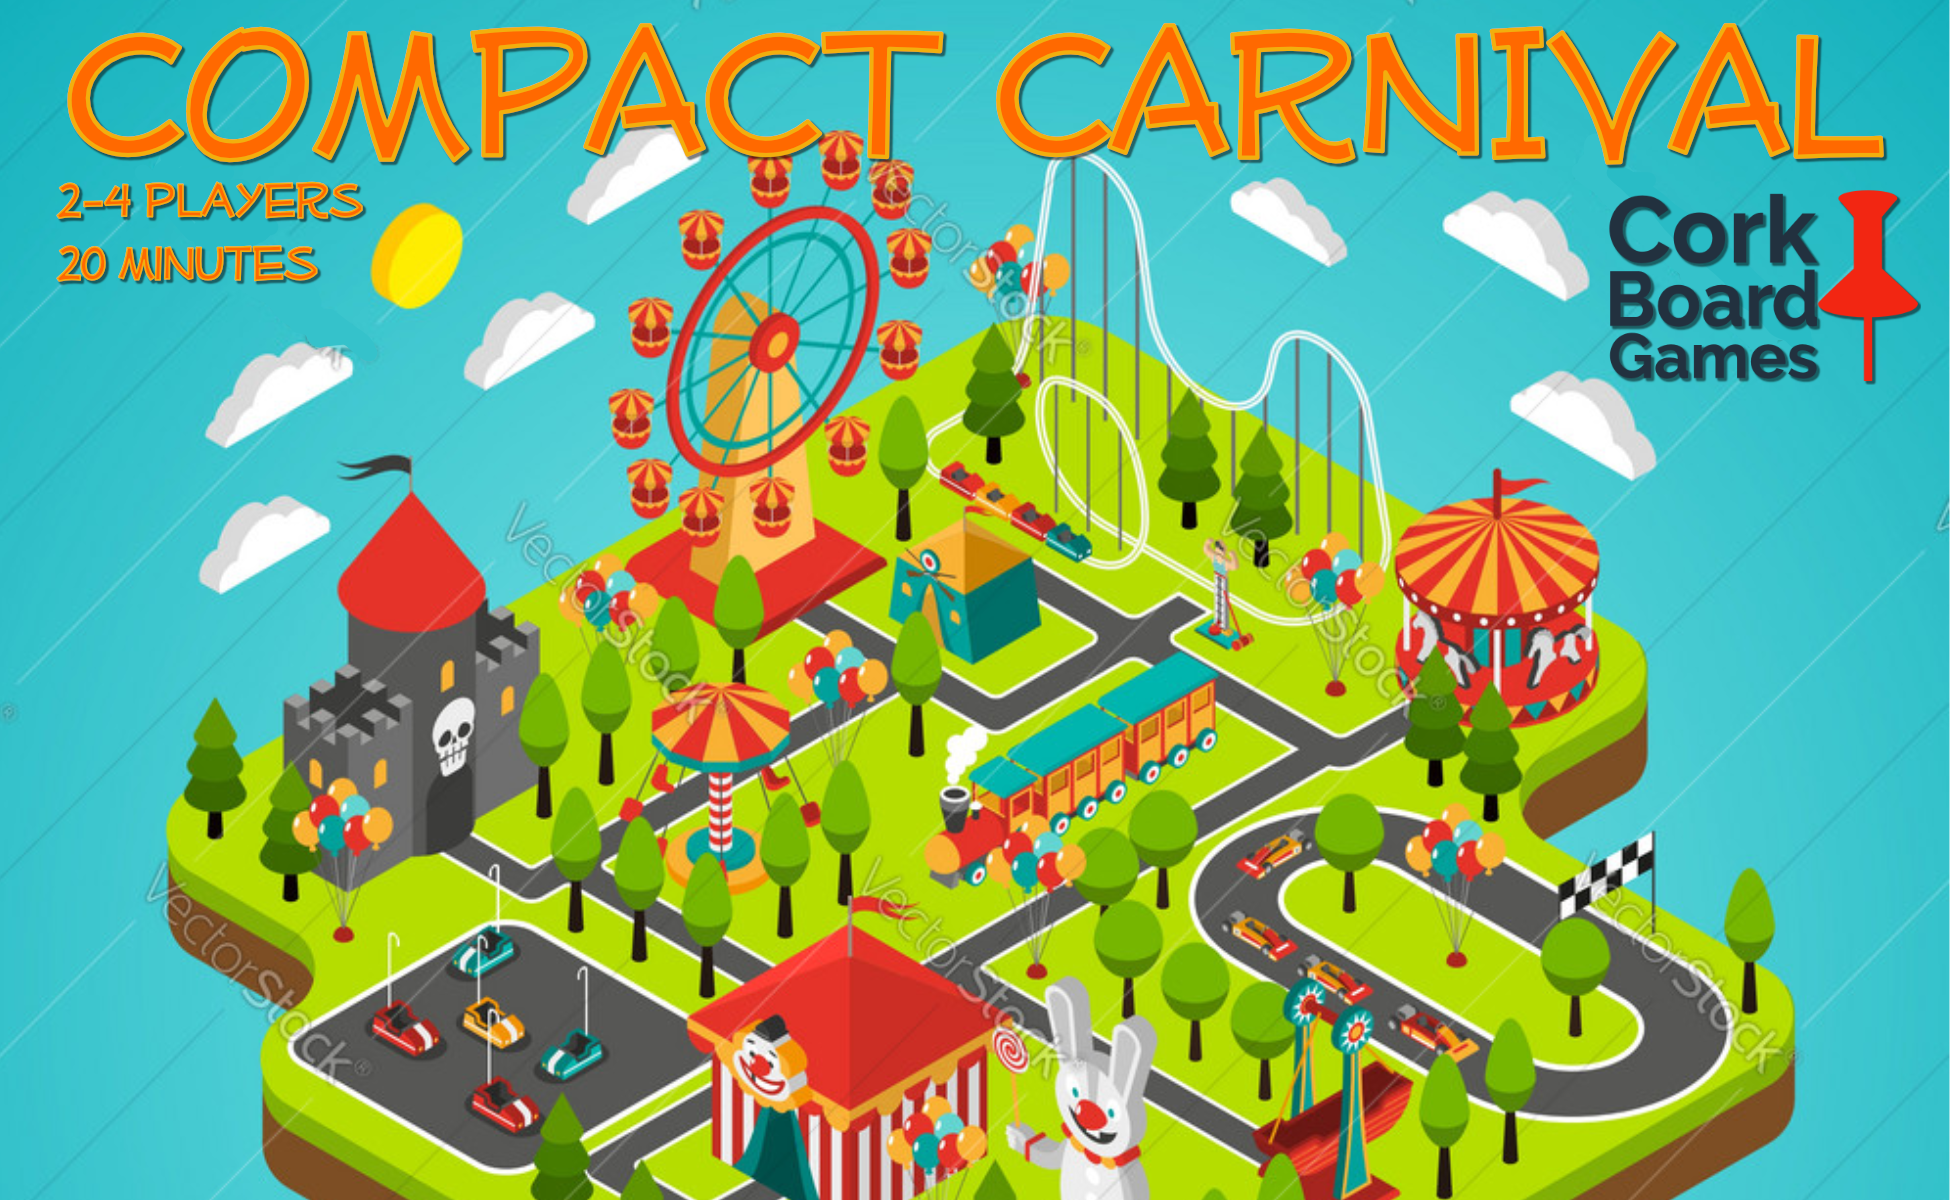 Updates on Compact Carnival